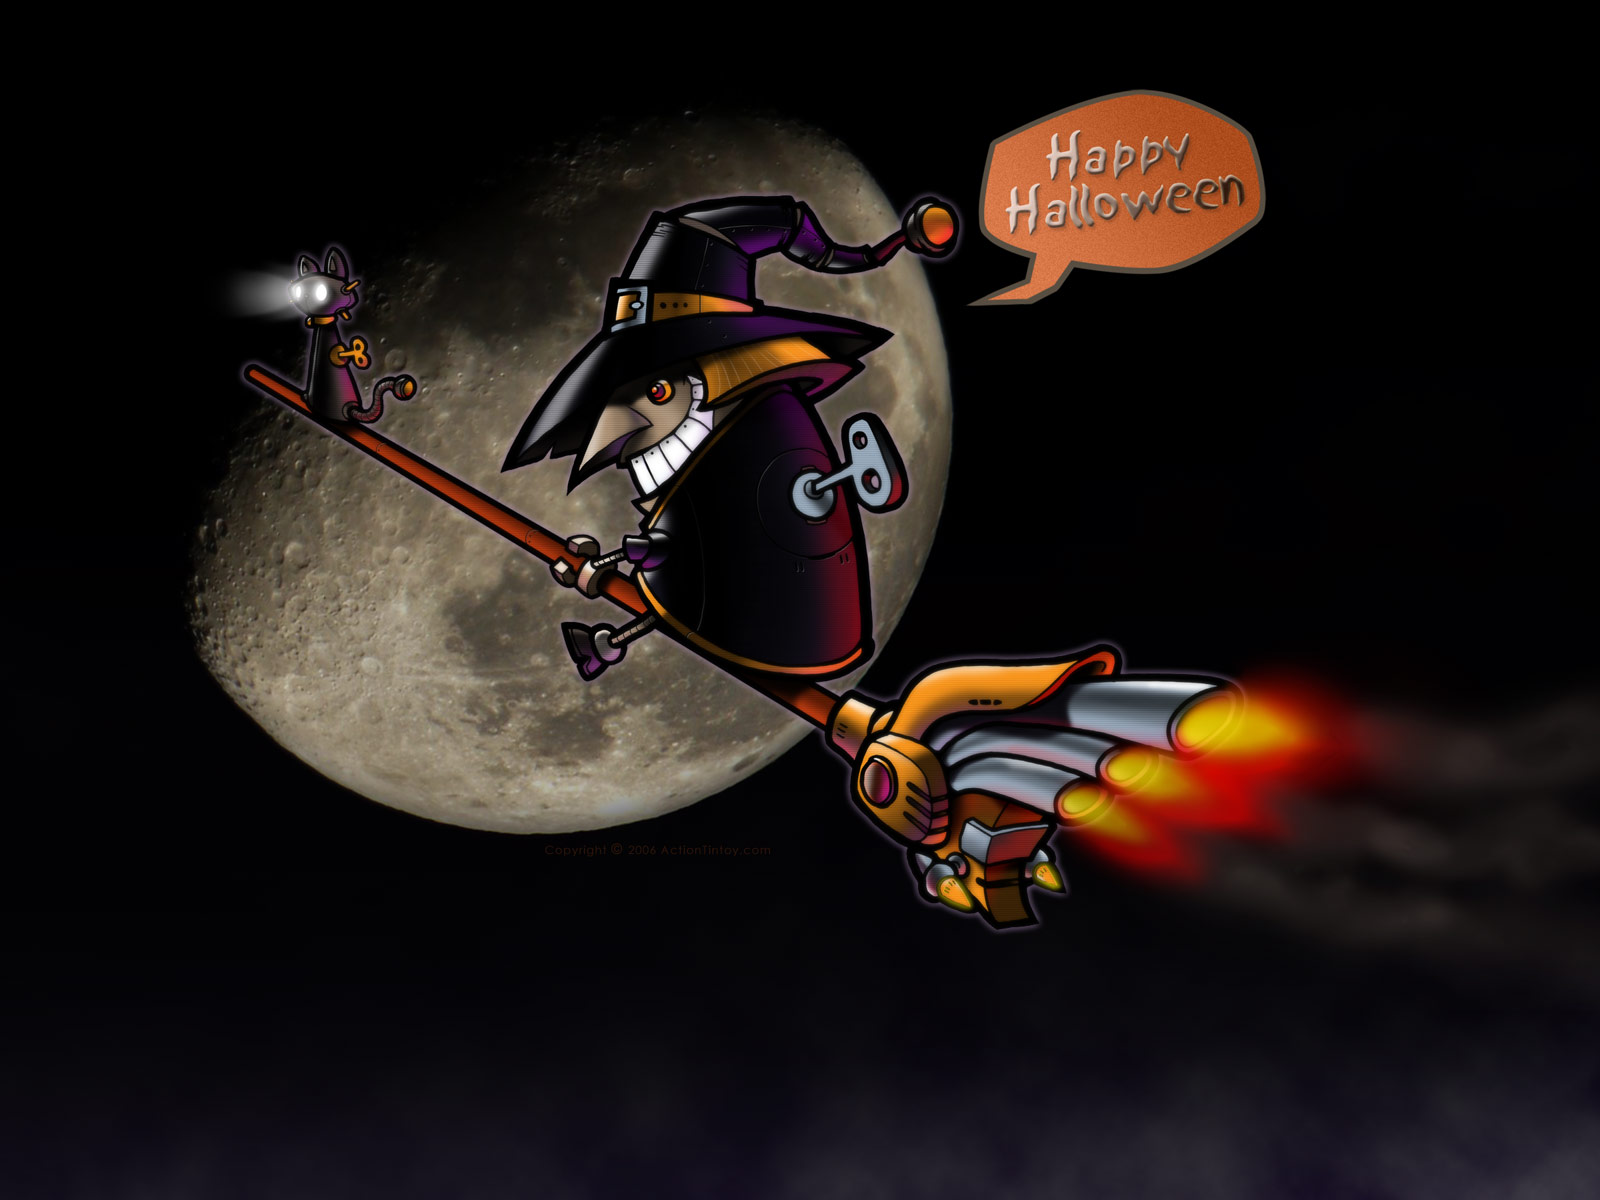 Happy Halloween witch available desktop background in 1600x1200 1600x1200